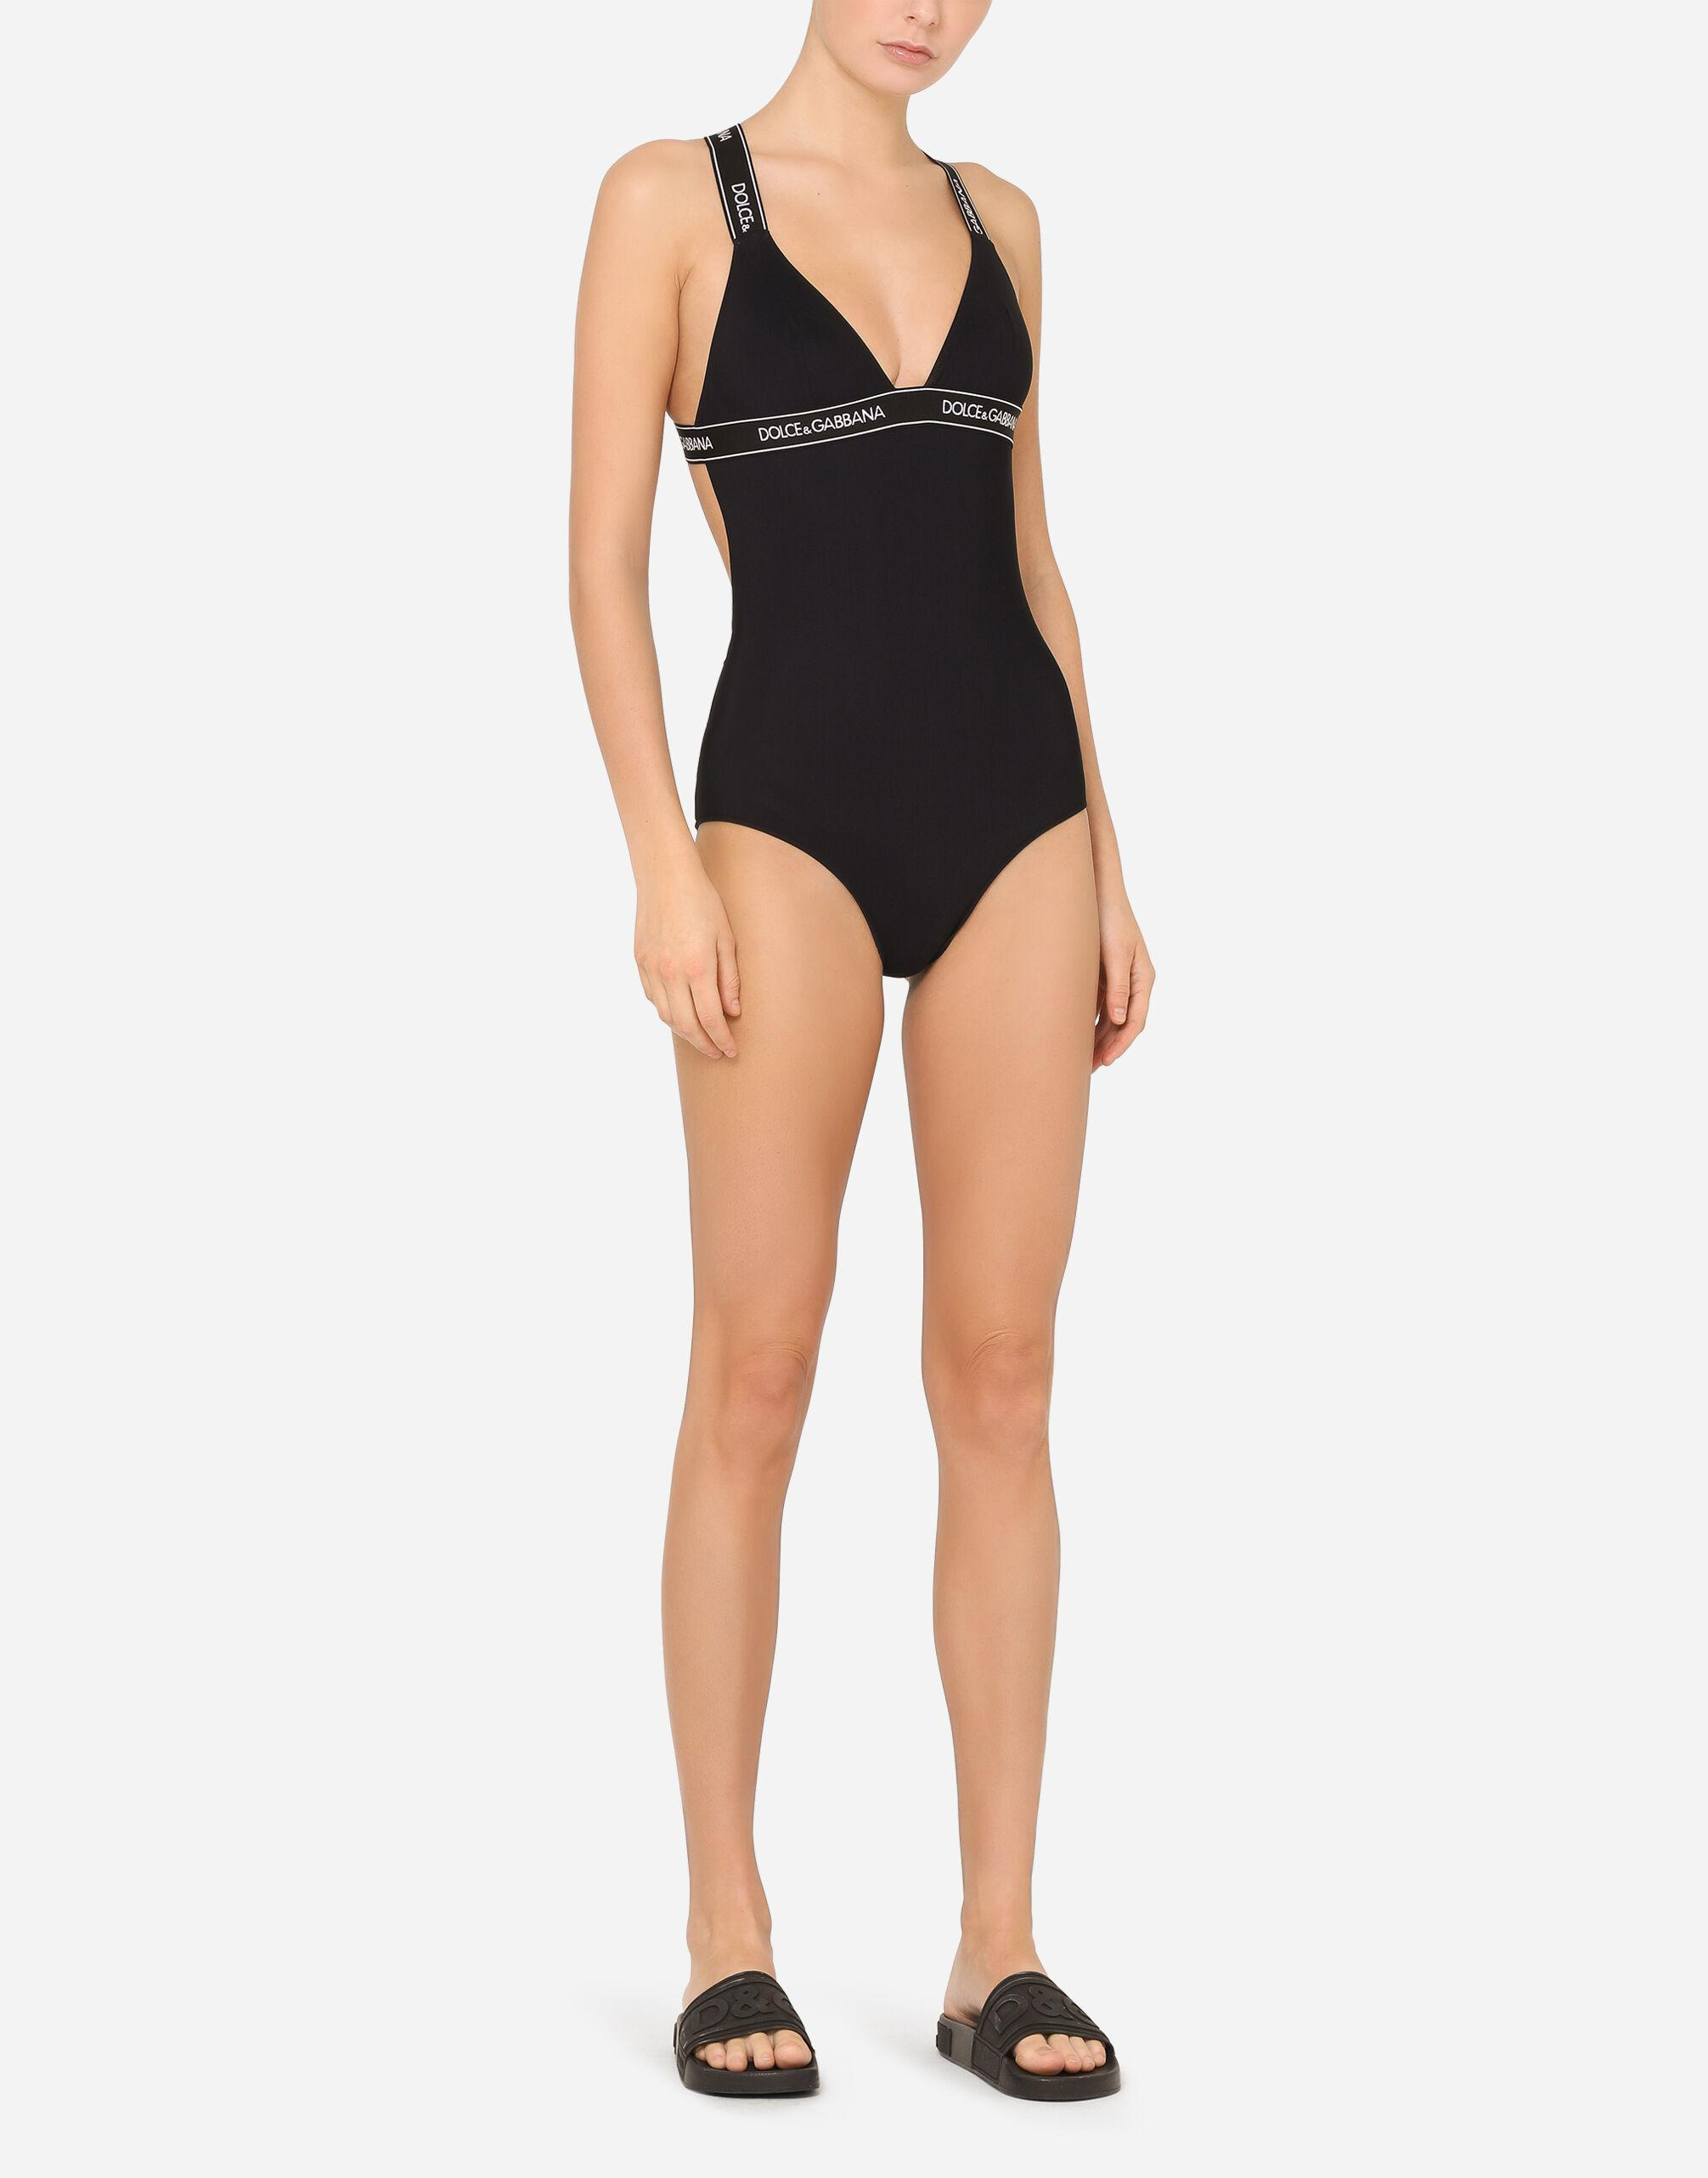 One-piece swimsuit with plunging neckline and branded elastic